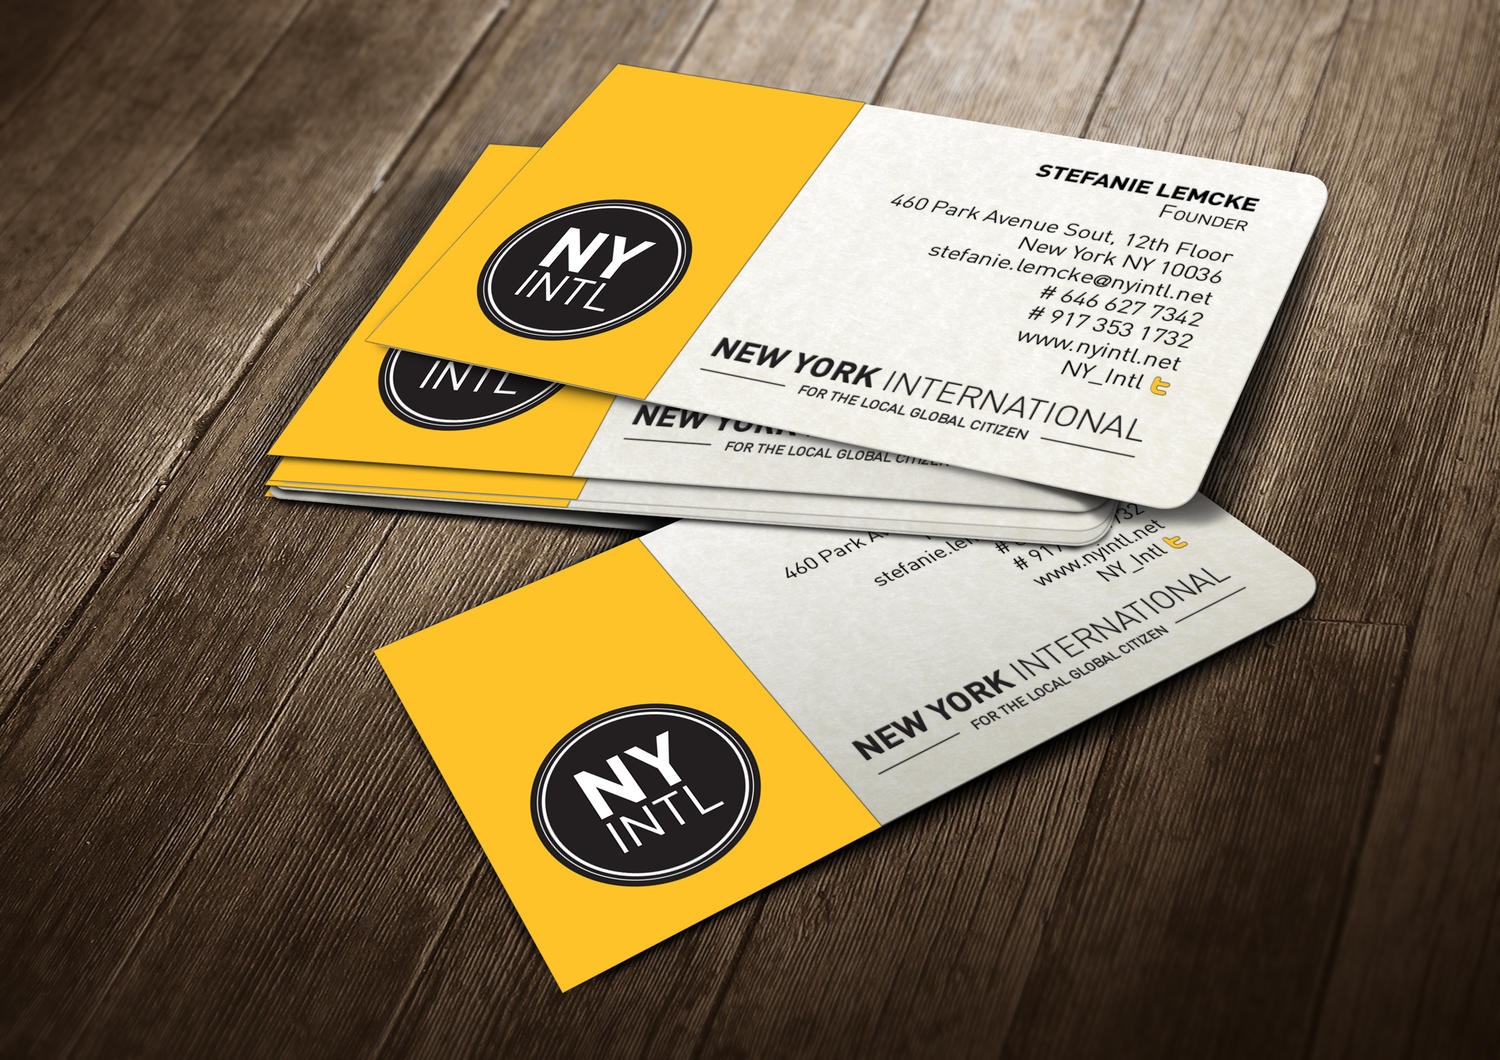 Professional Business Card Design By Madridnyc On Envato Studio